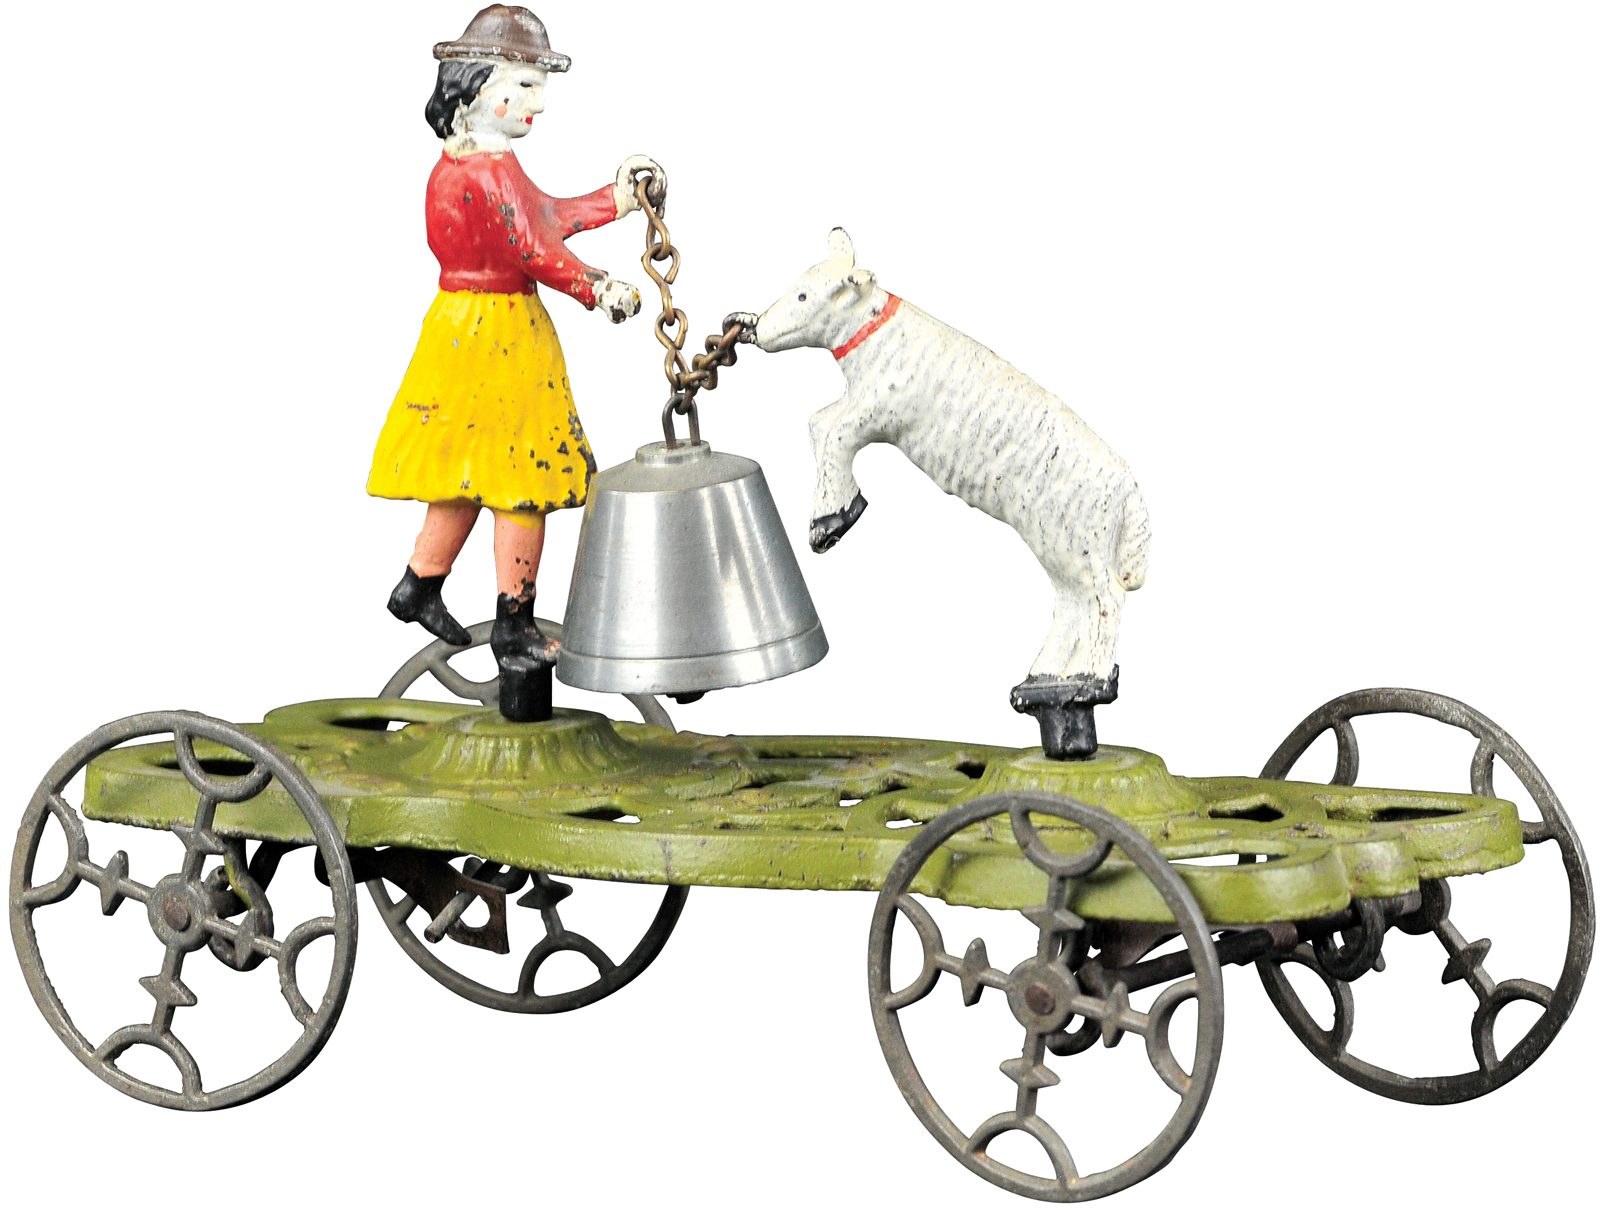 Mary and Her Little Lamb bell toy, Gong Bell Mfg. Co., considered the finest known example, provenance: Covert Hegarty collection, $14,400. Bertoia Auctions image